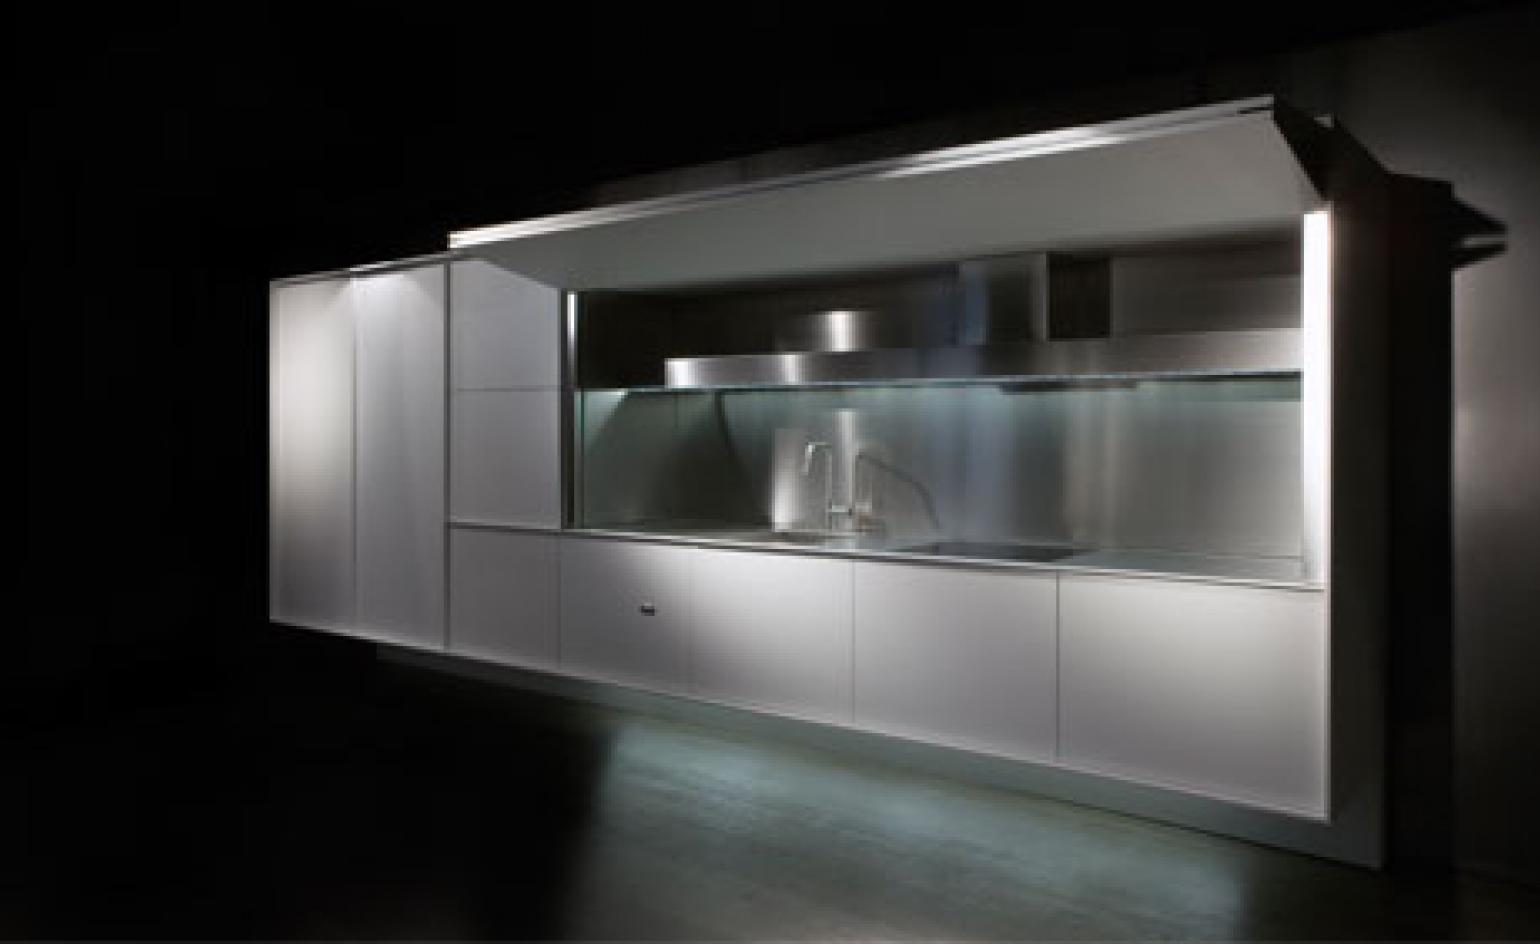 Mobile Kitchen Cabinet Showroom